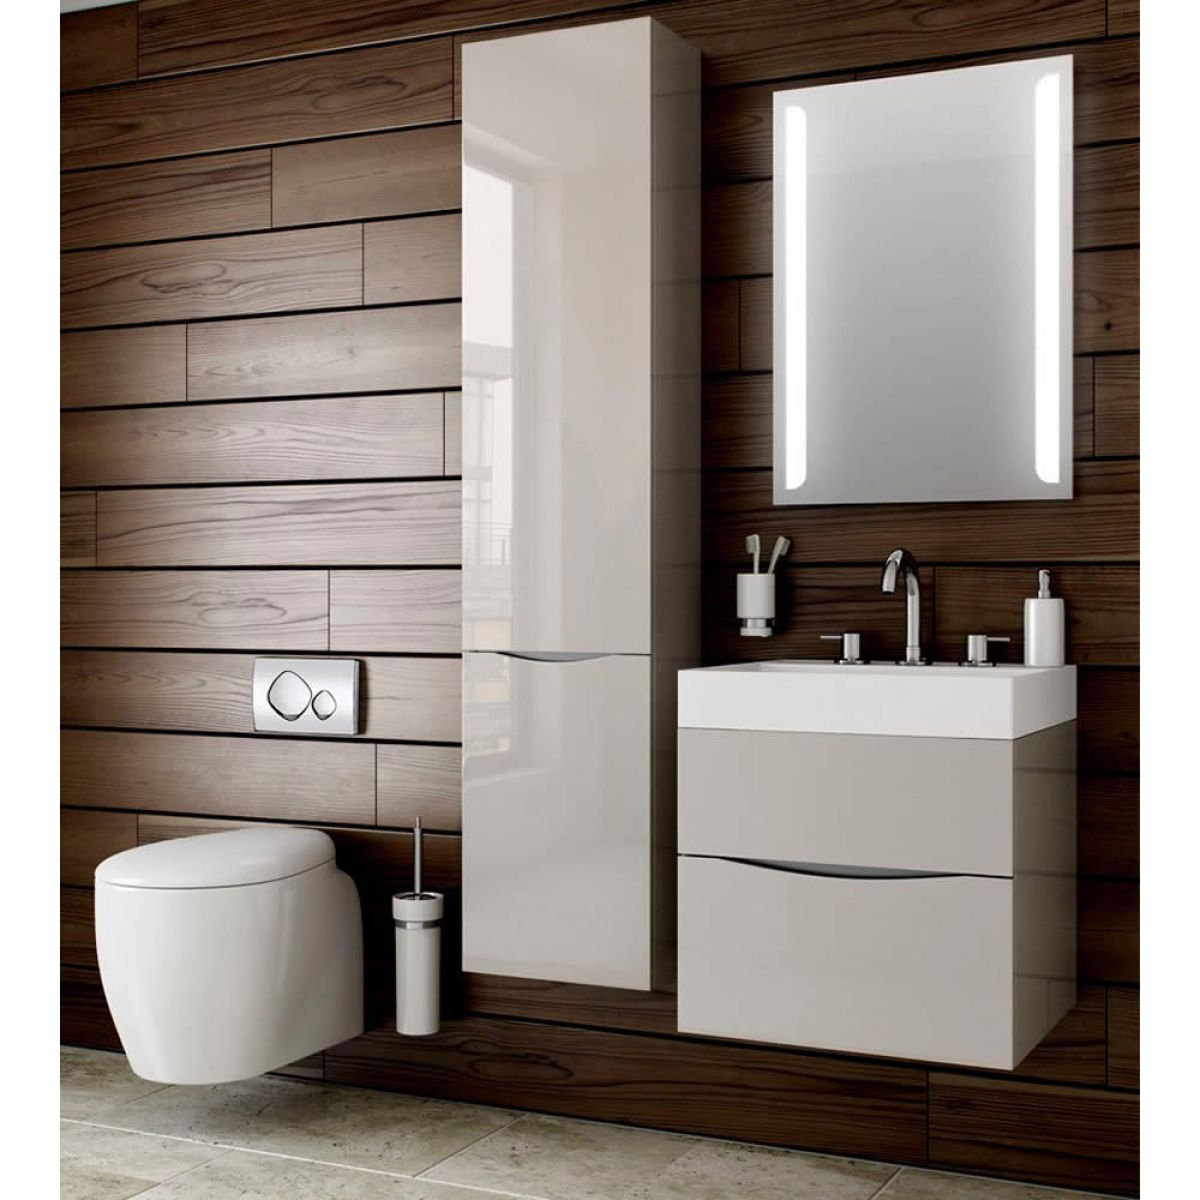 Bauhaus glide ii 70 wall hung vanity unit with basin for Bathroom cabinet ideas furniture